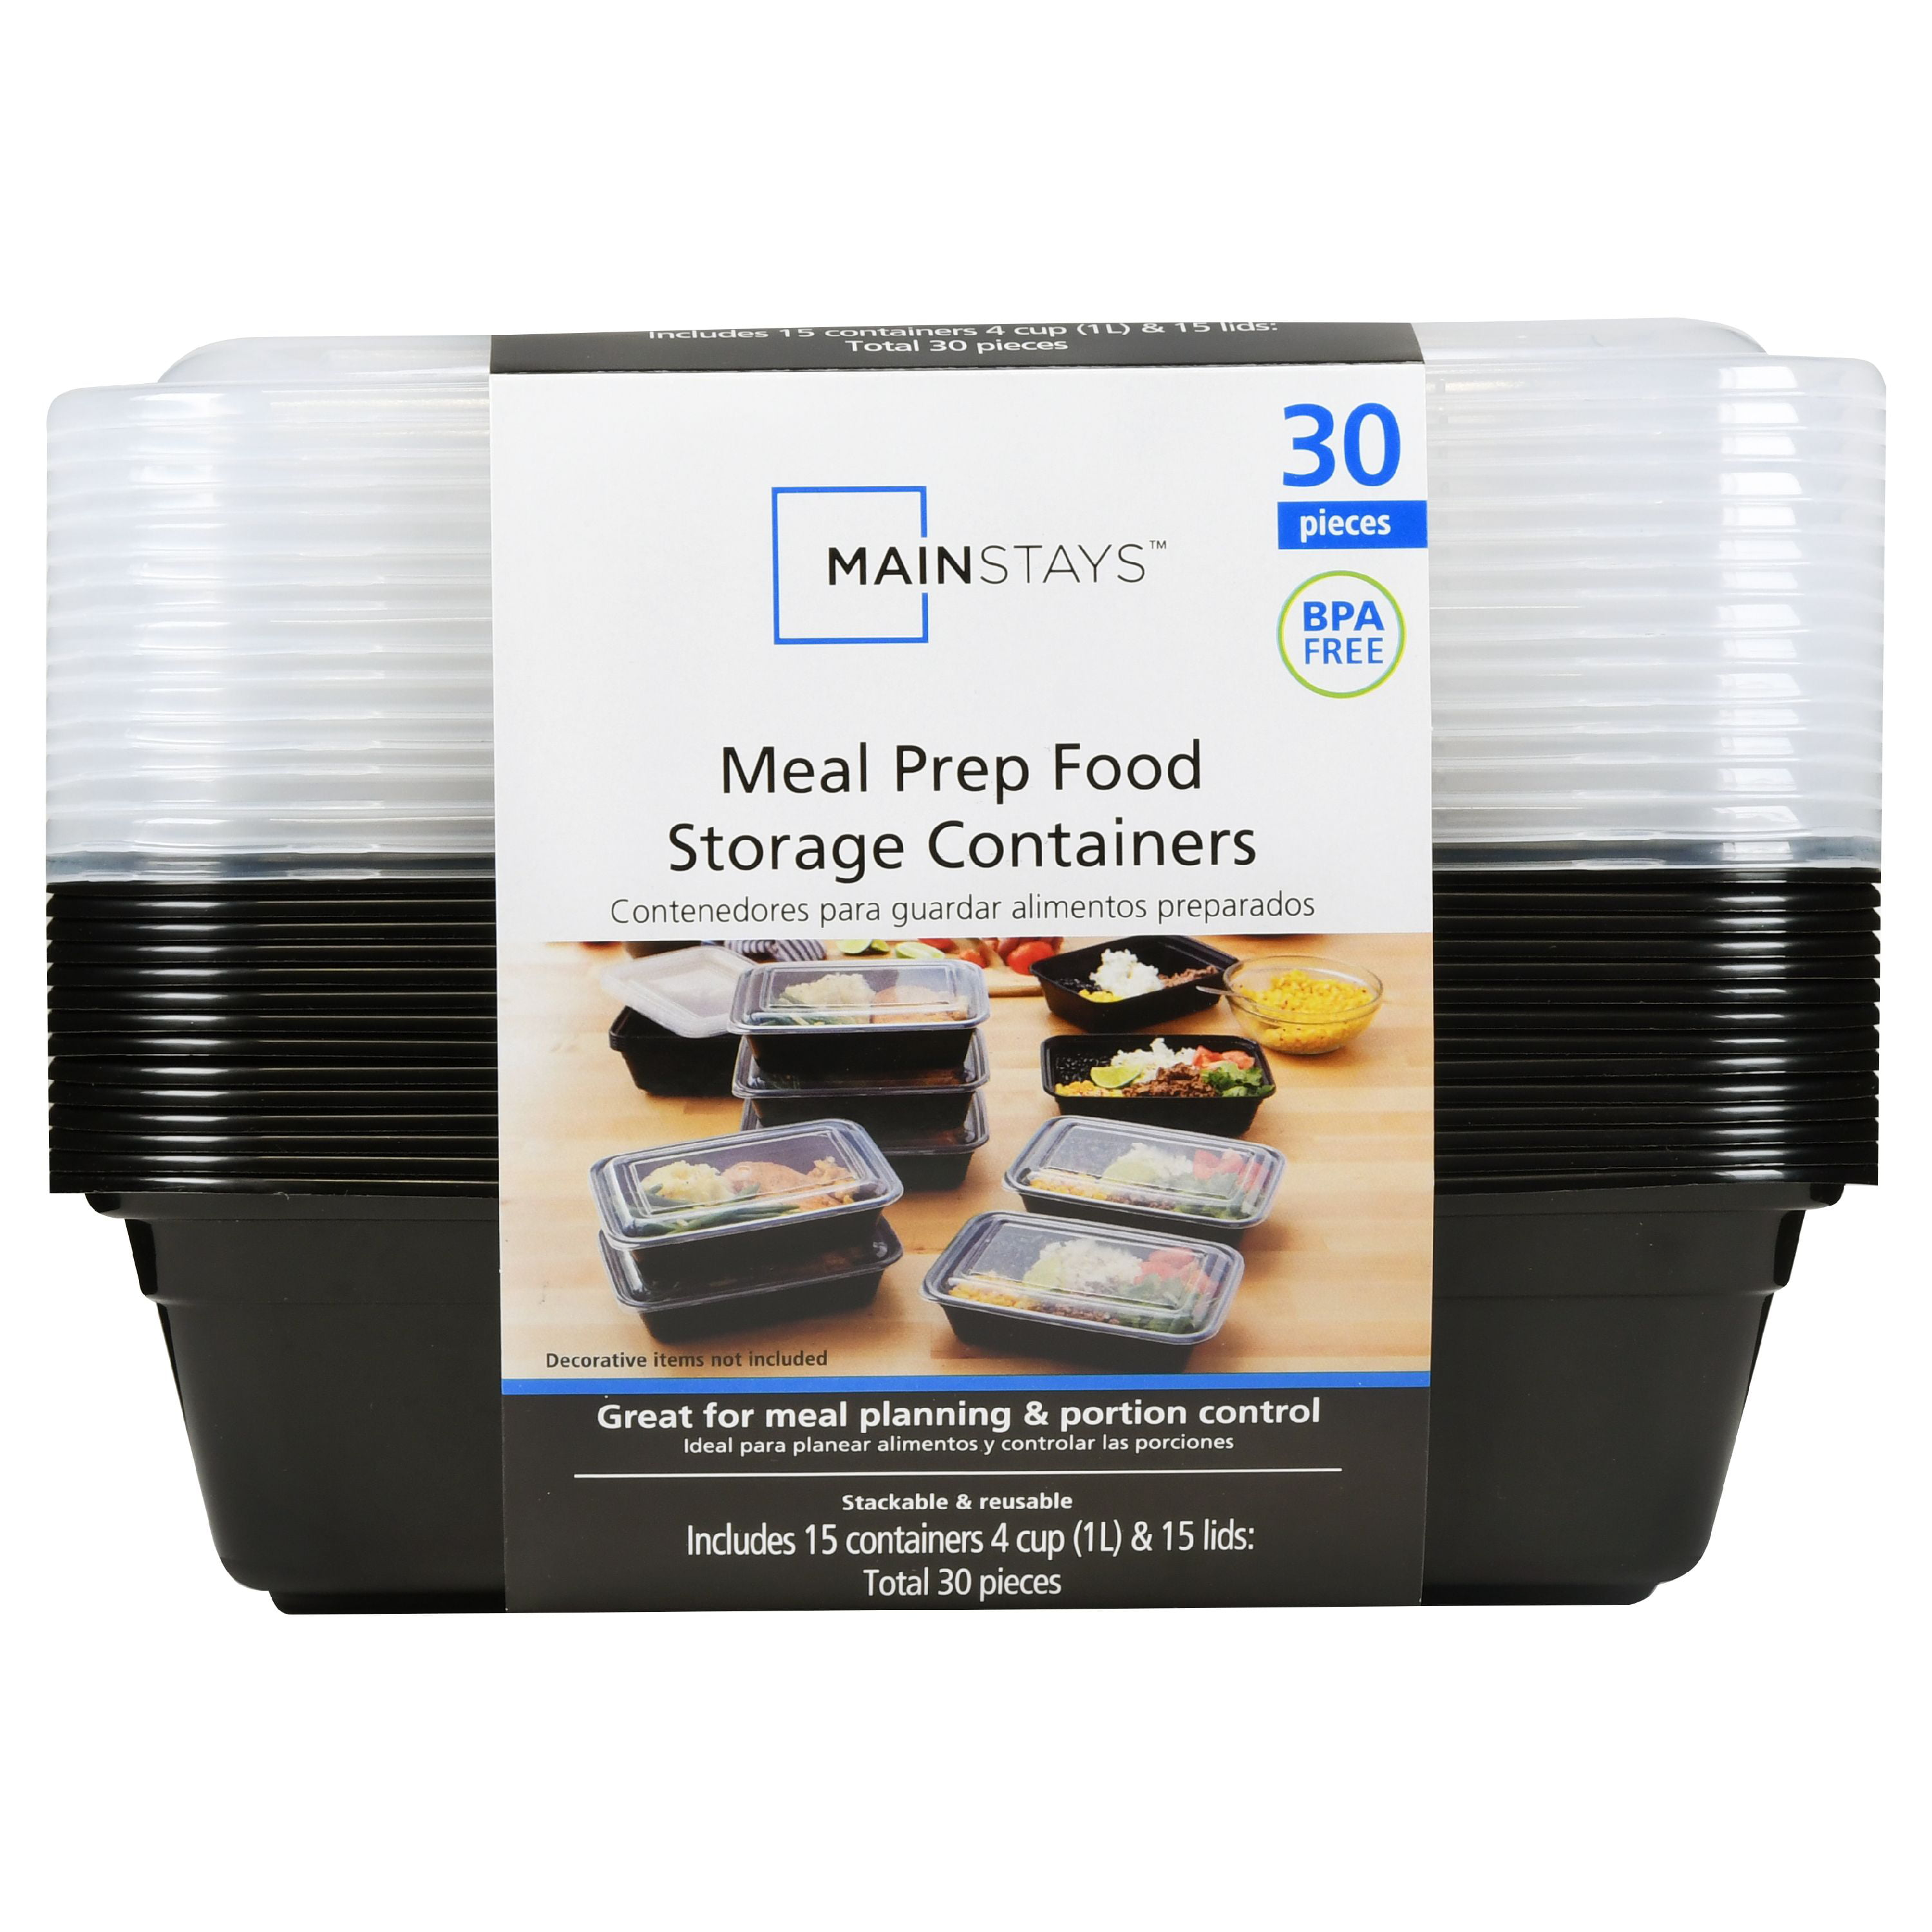 Mainstays Meal Prep Food Storage Containers 30 Count Walmartcom